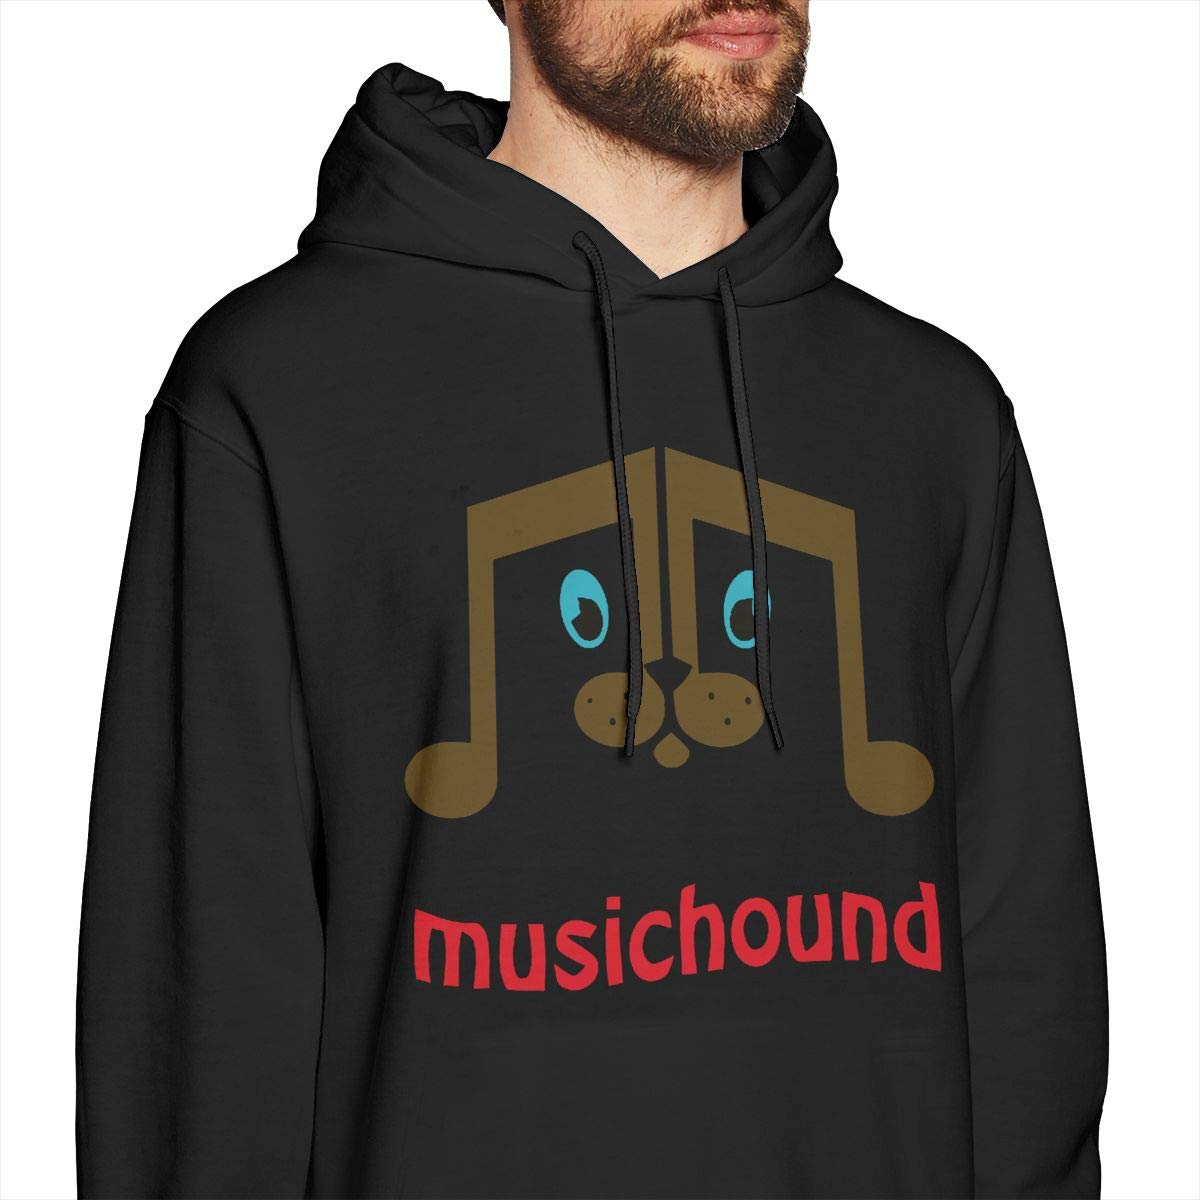 Casual and Delicate Tide Brand Music Hound Alphabet Pattern Winter Plus Cotton Black Mens Hooded Sweatshirt Light and Soft